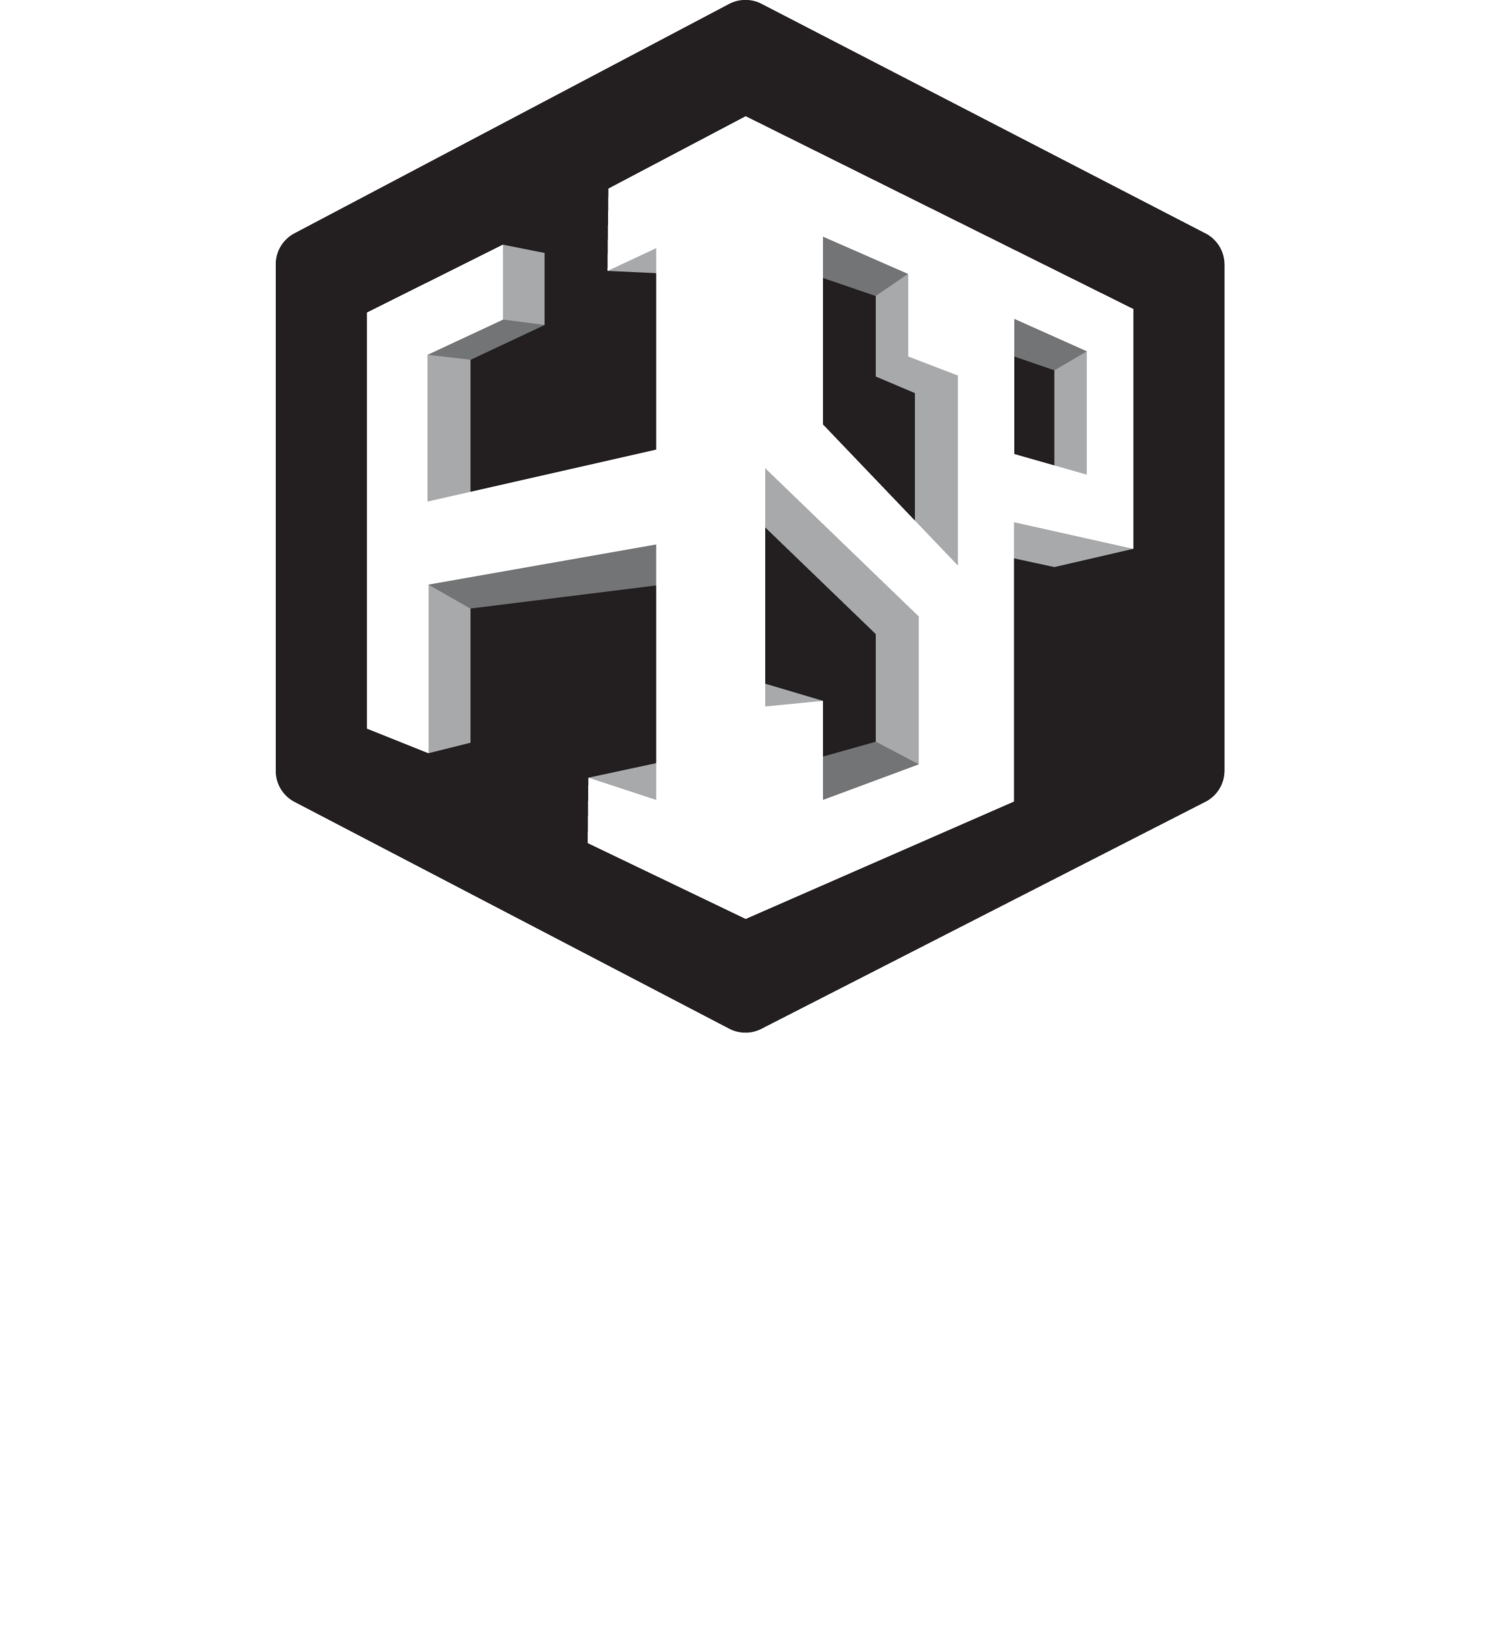 brandon@hartsmartproducts.com